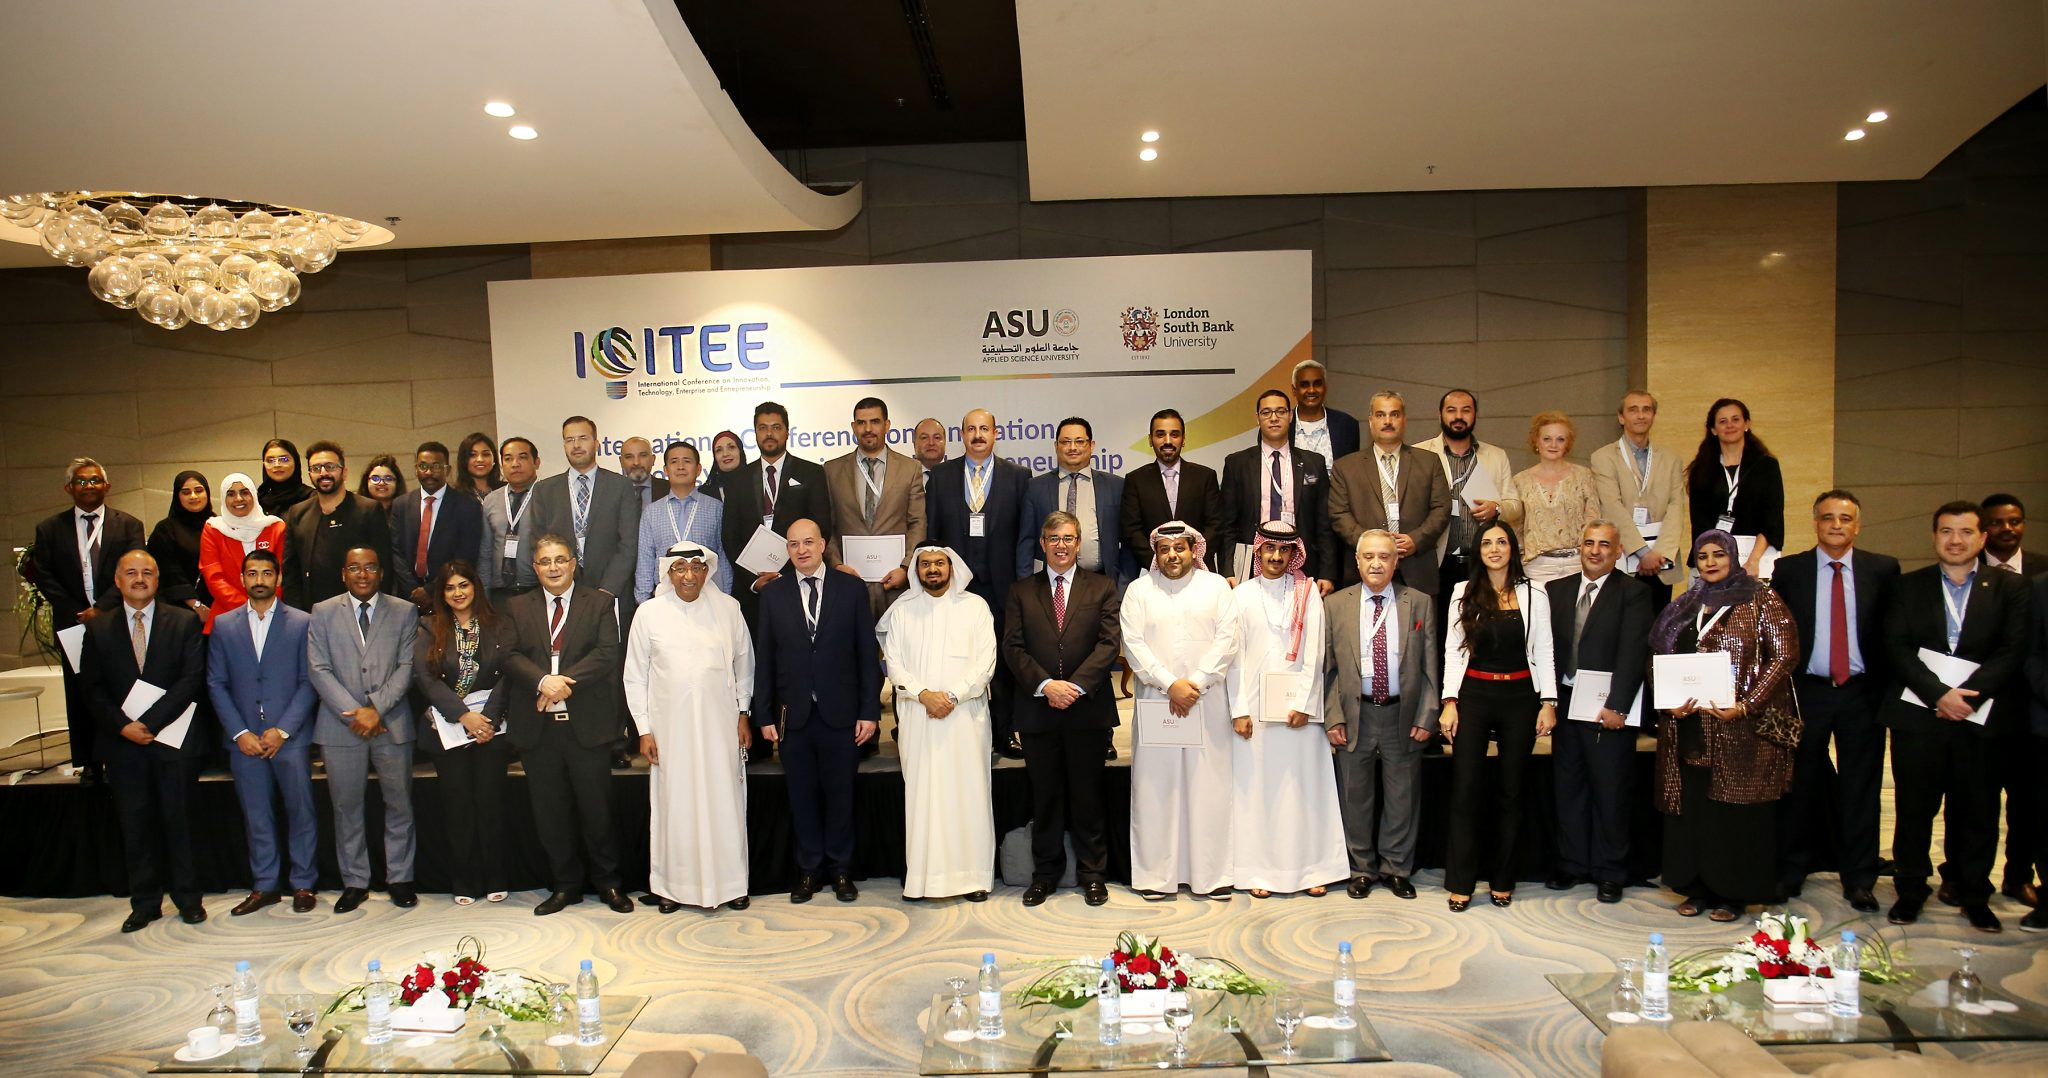 DAU's Engineering participates in the International Conference on Innovation & Technology